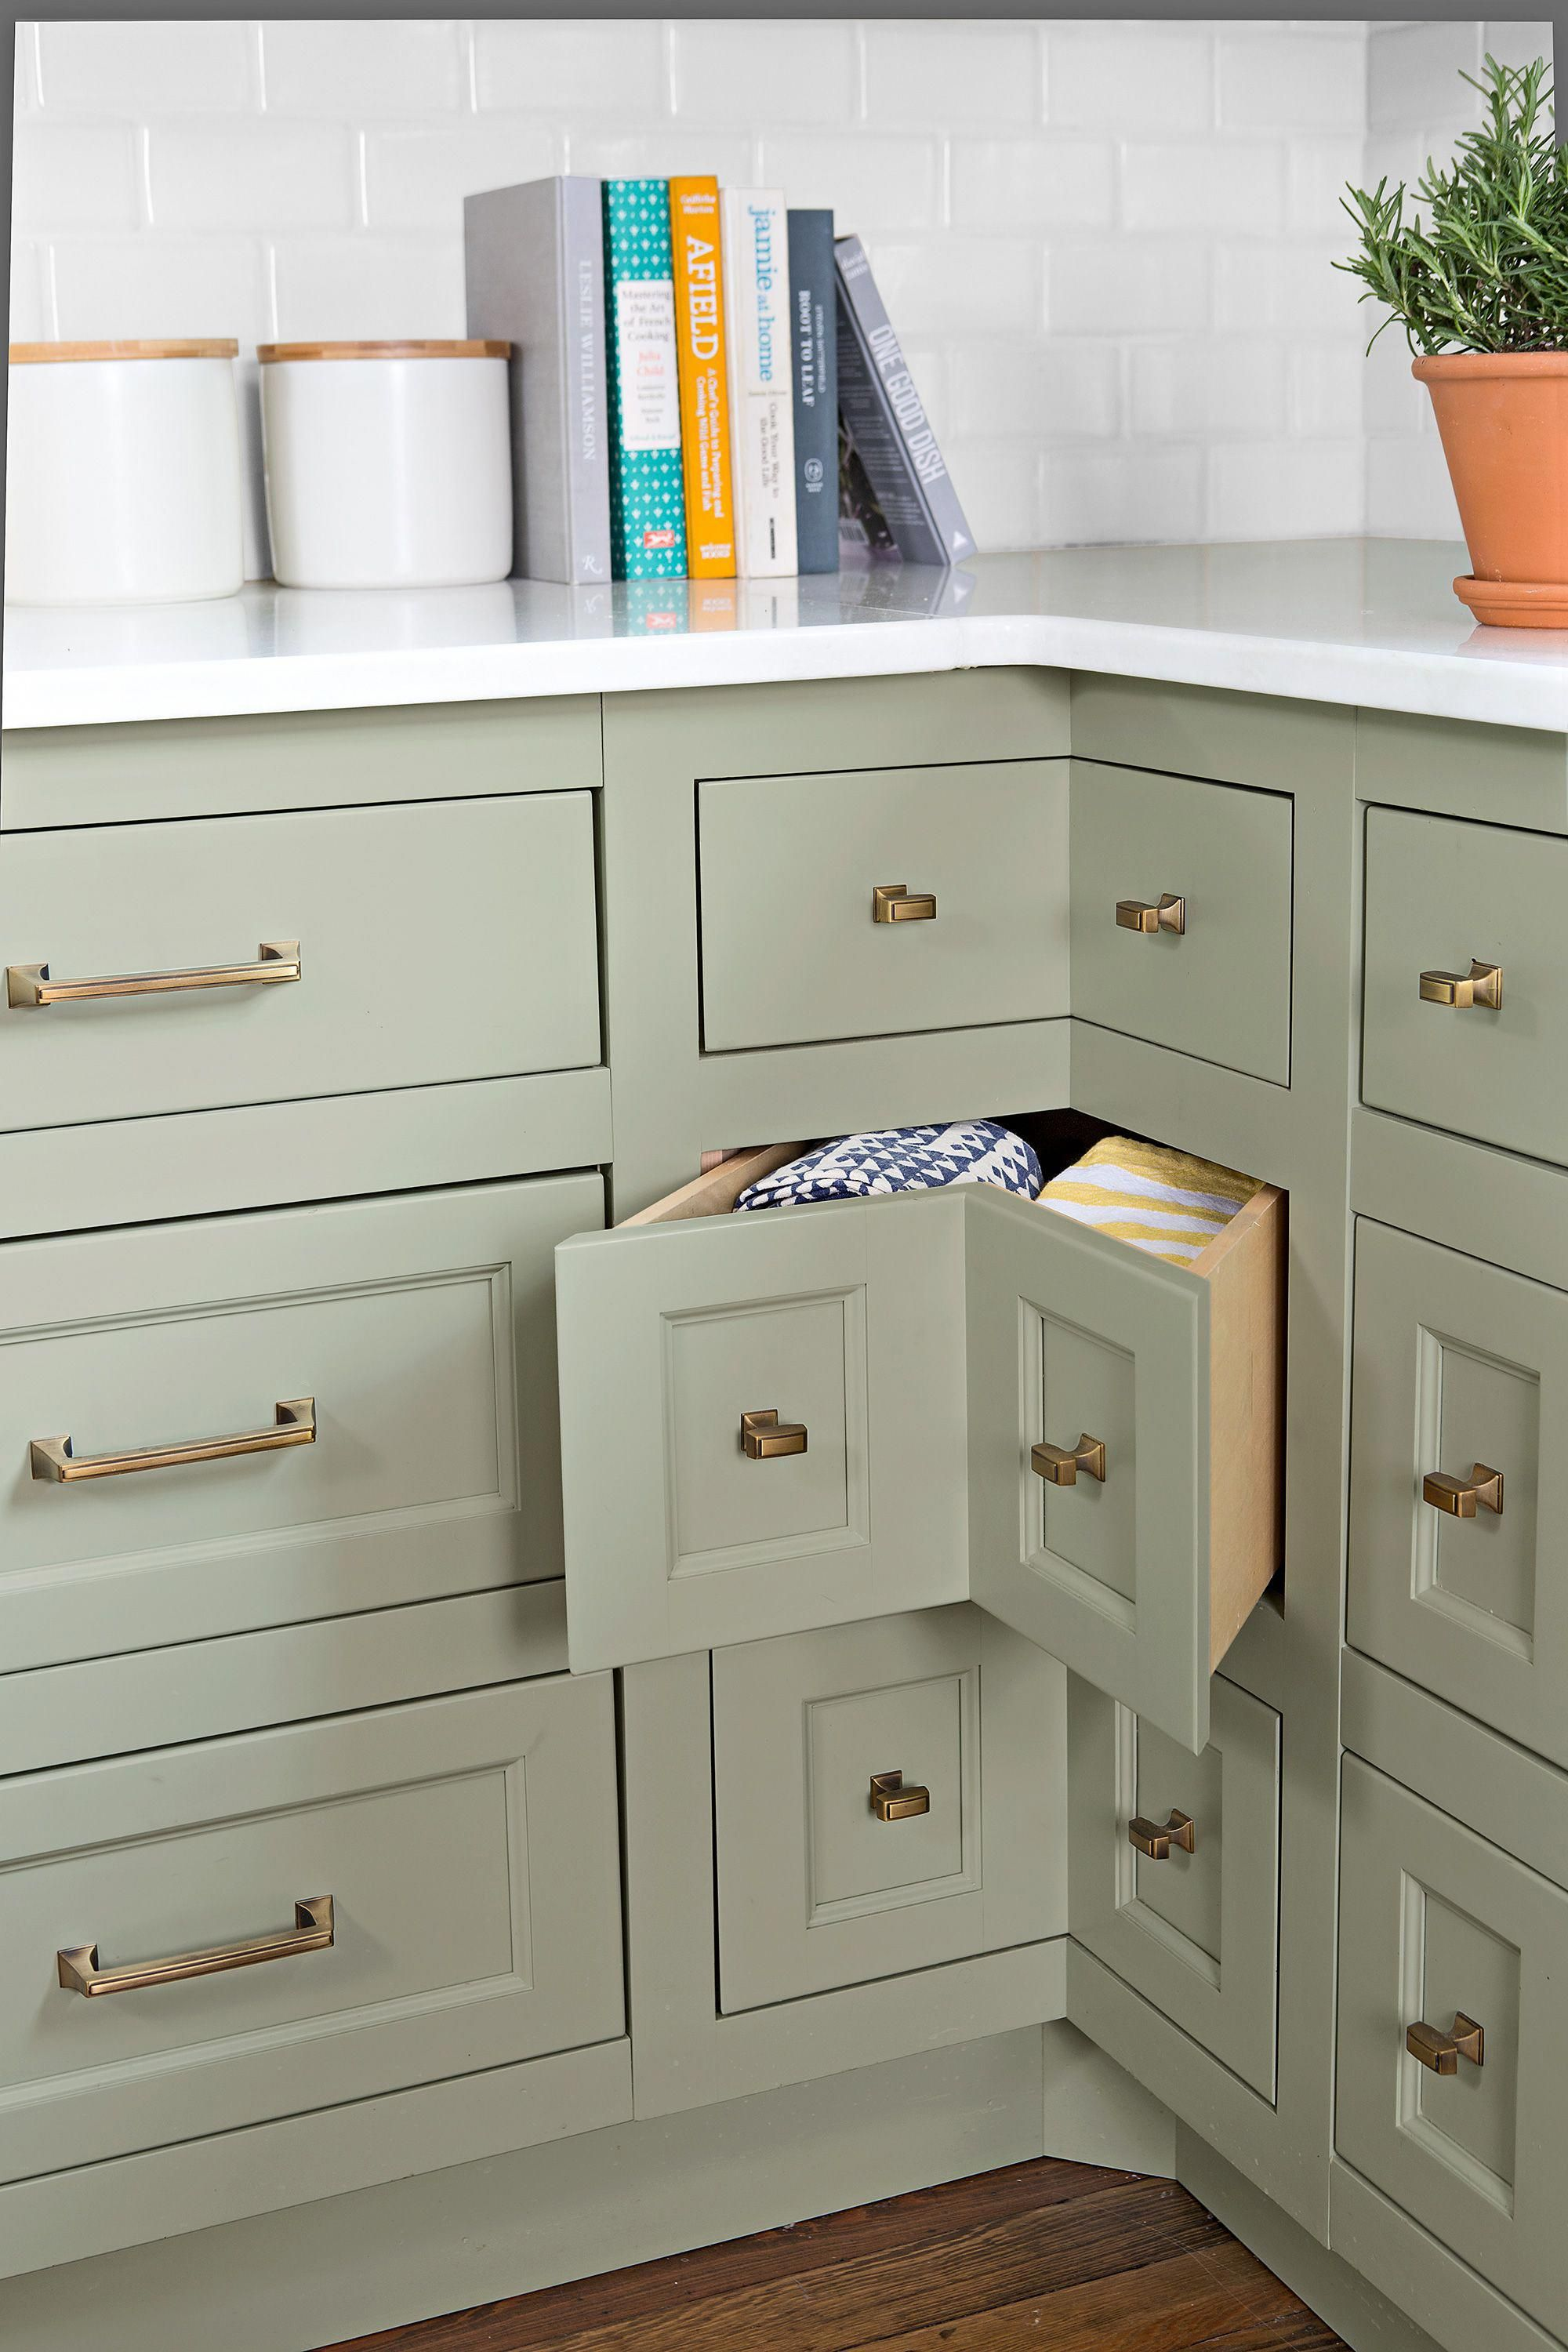 Which Mirror To Choose For My Bathroom New Kitchen Cabinets Green Kitchen Cabinets Cabinet Design